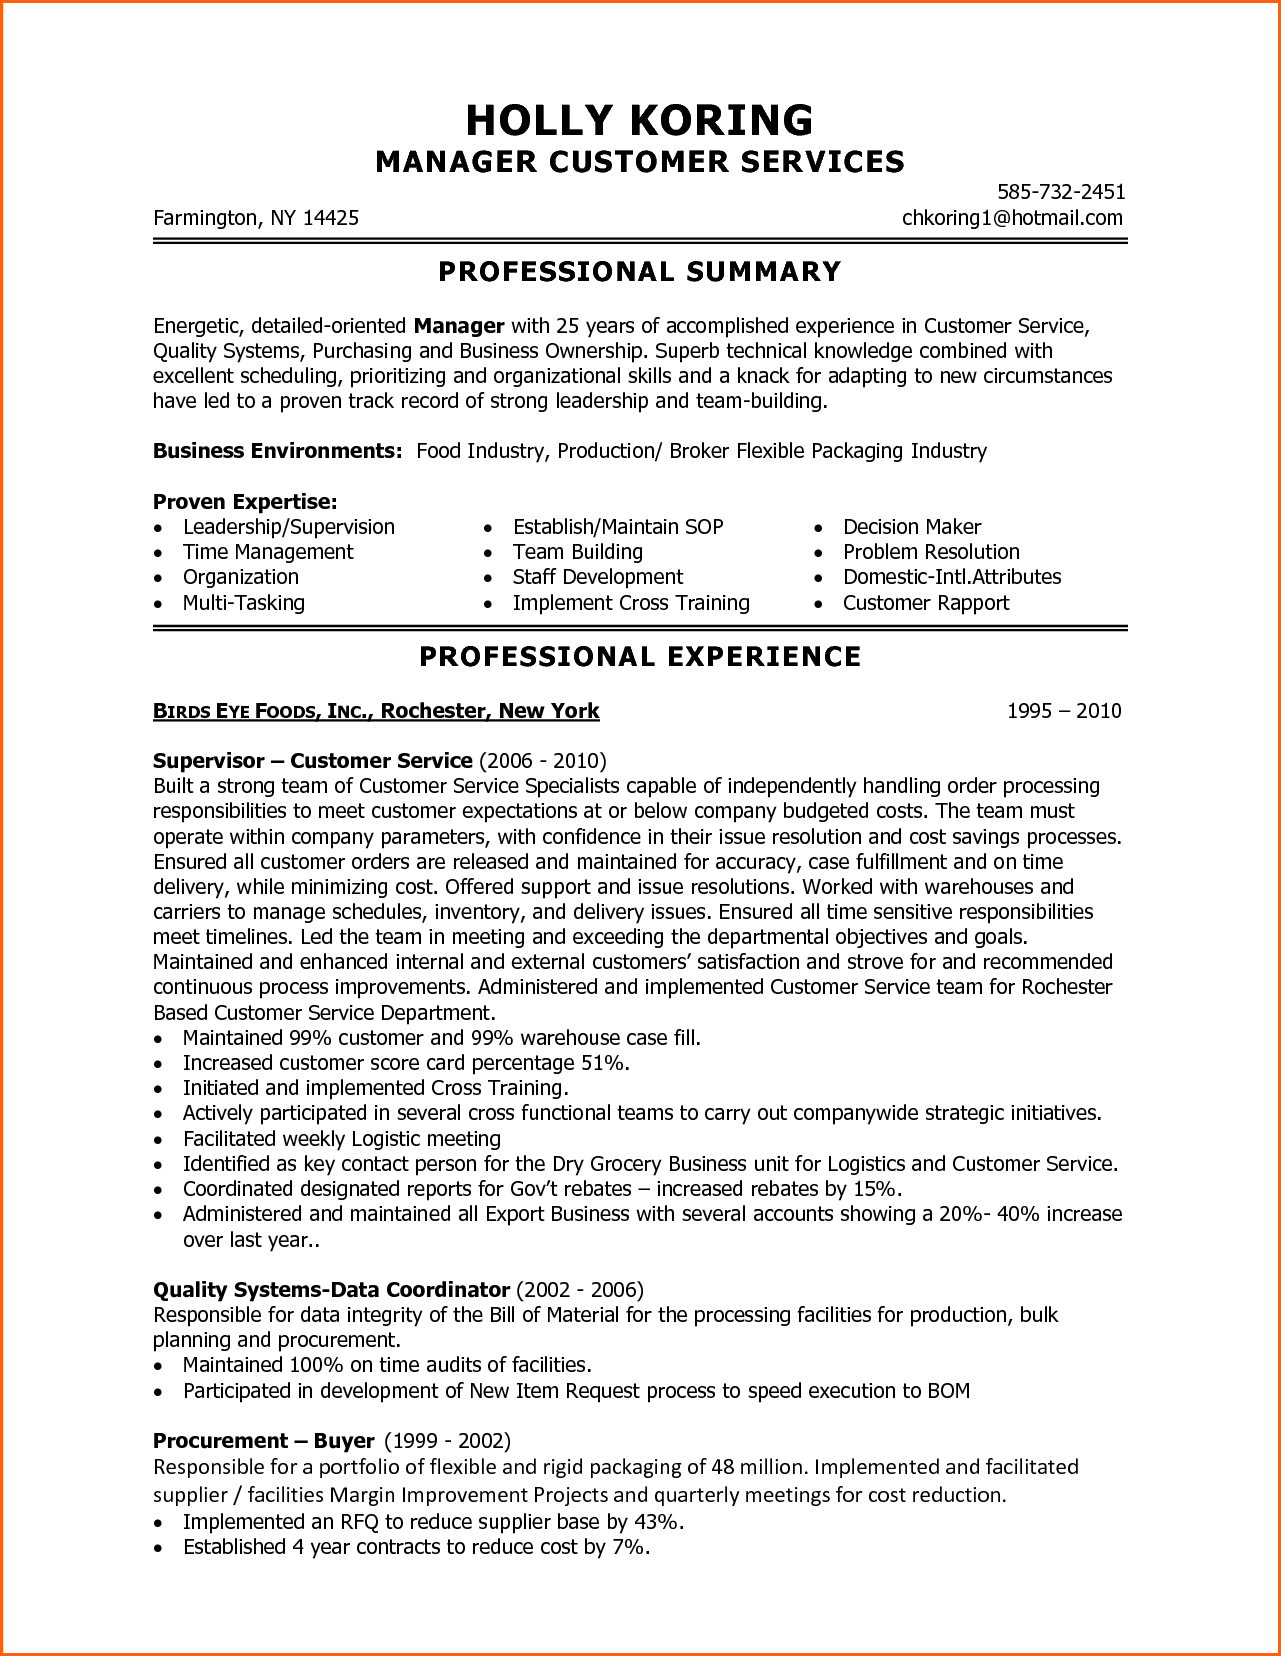 Customer Service Resume Examples Skills Event Planning Template  Resume Examples Of Skills